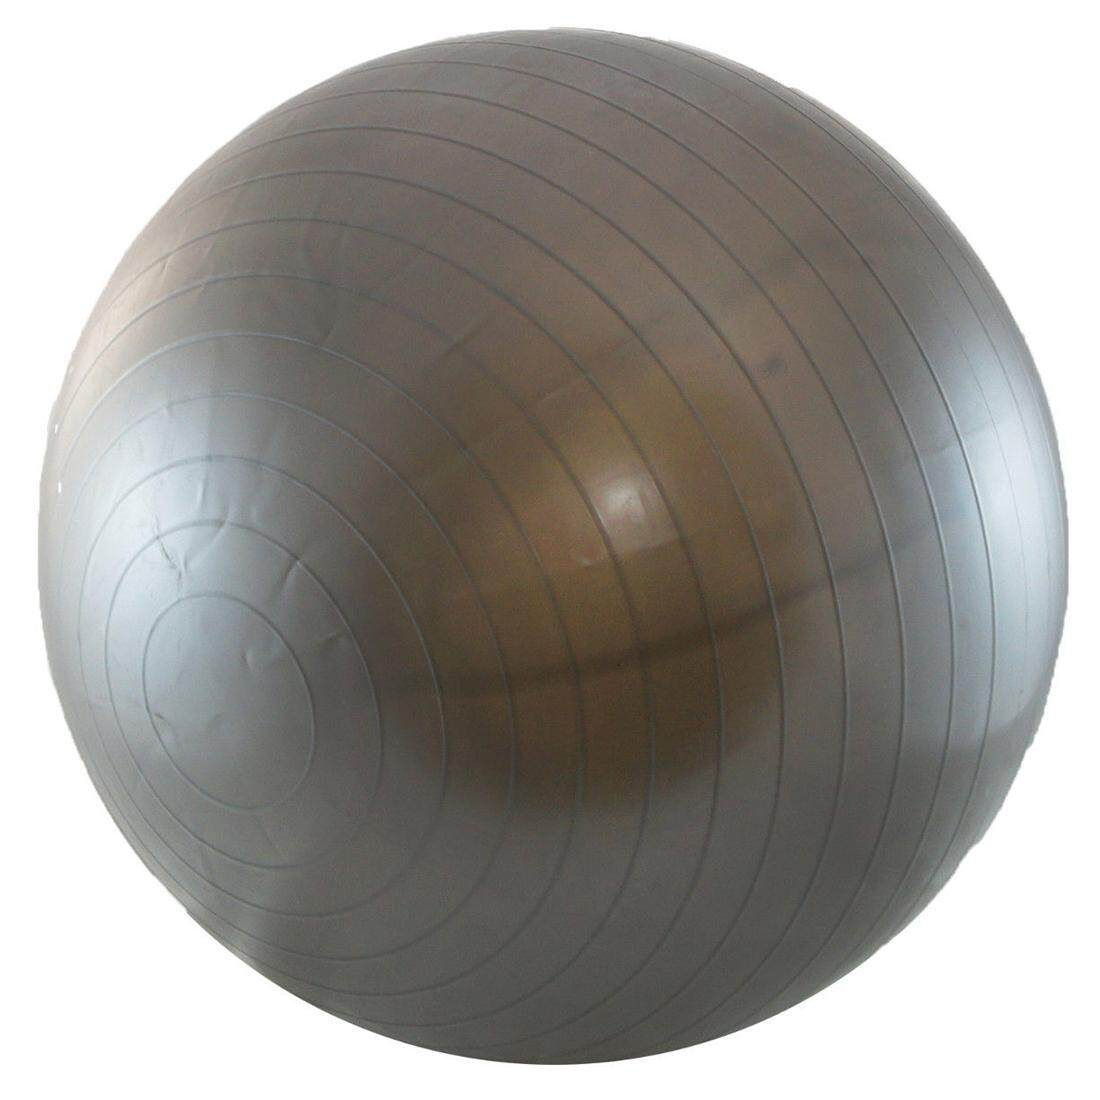 Balancing Stability Ball for Yoga Pilates Anti-Burst + Air Pump Gray 55 cm e2f3106b435e6